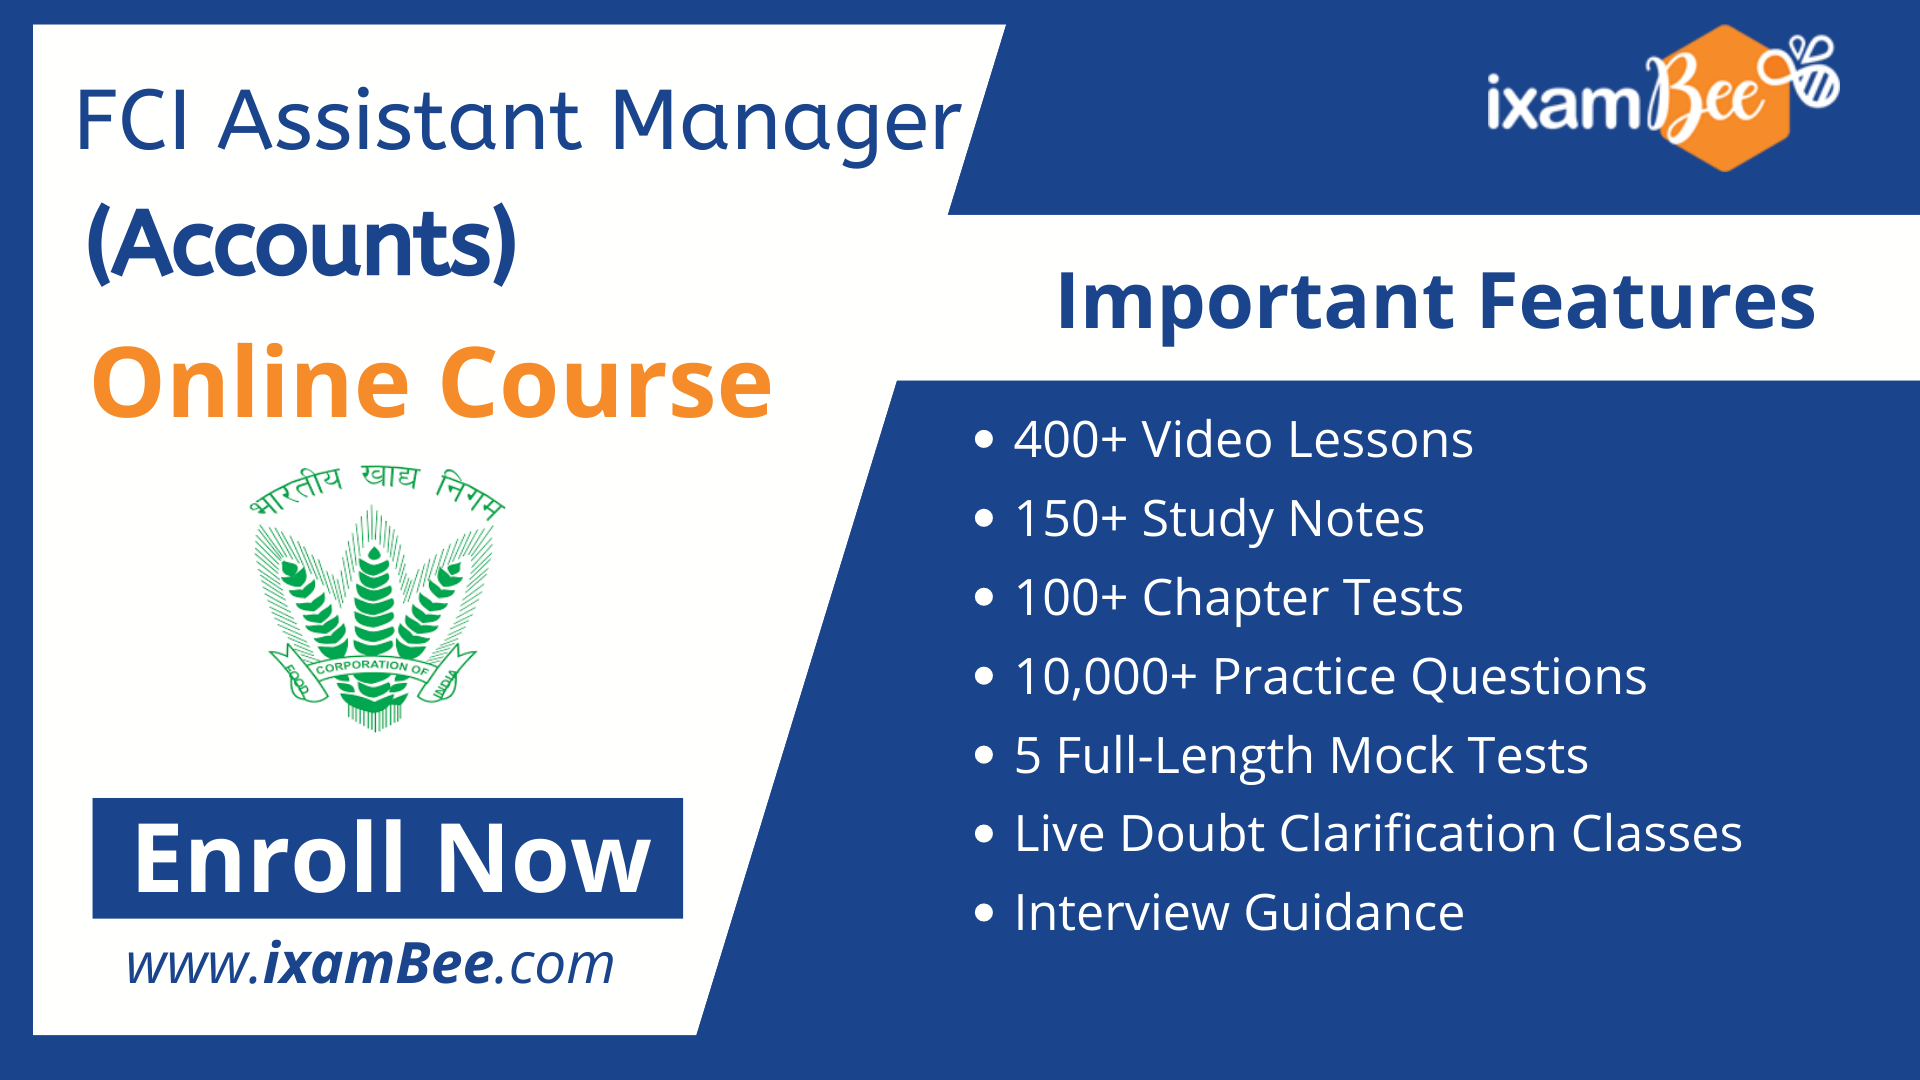 FCI Assistant General Manager (Accounts) Online Course